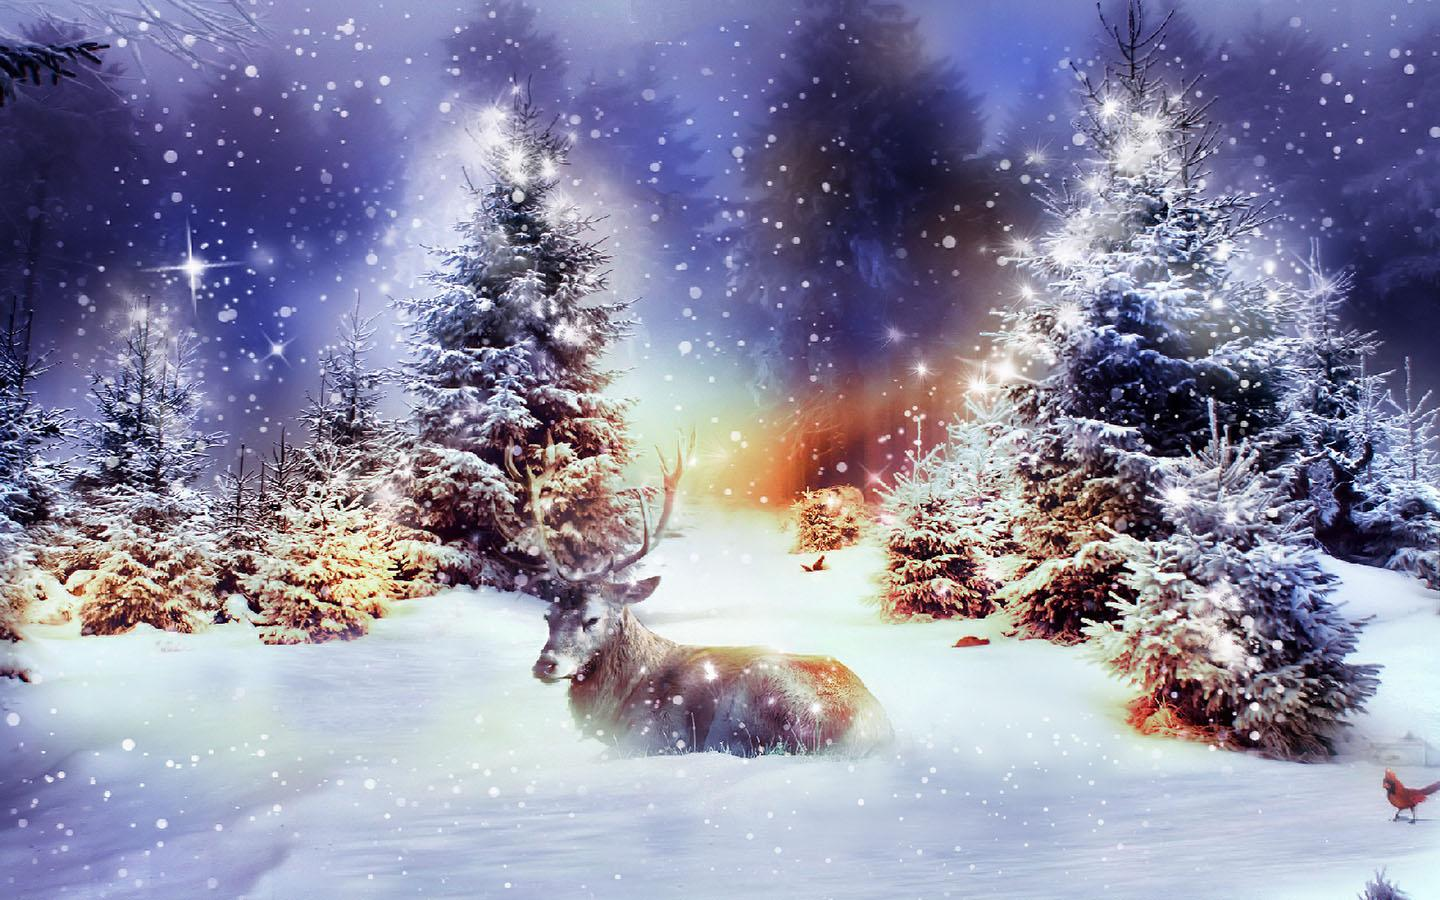 winter christmas wallpaper hd resolution